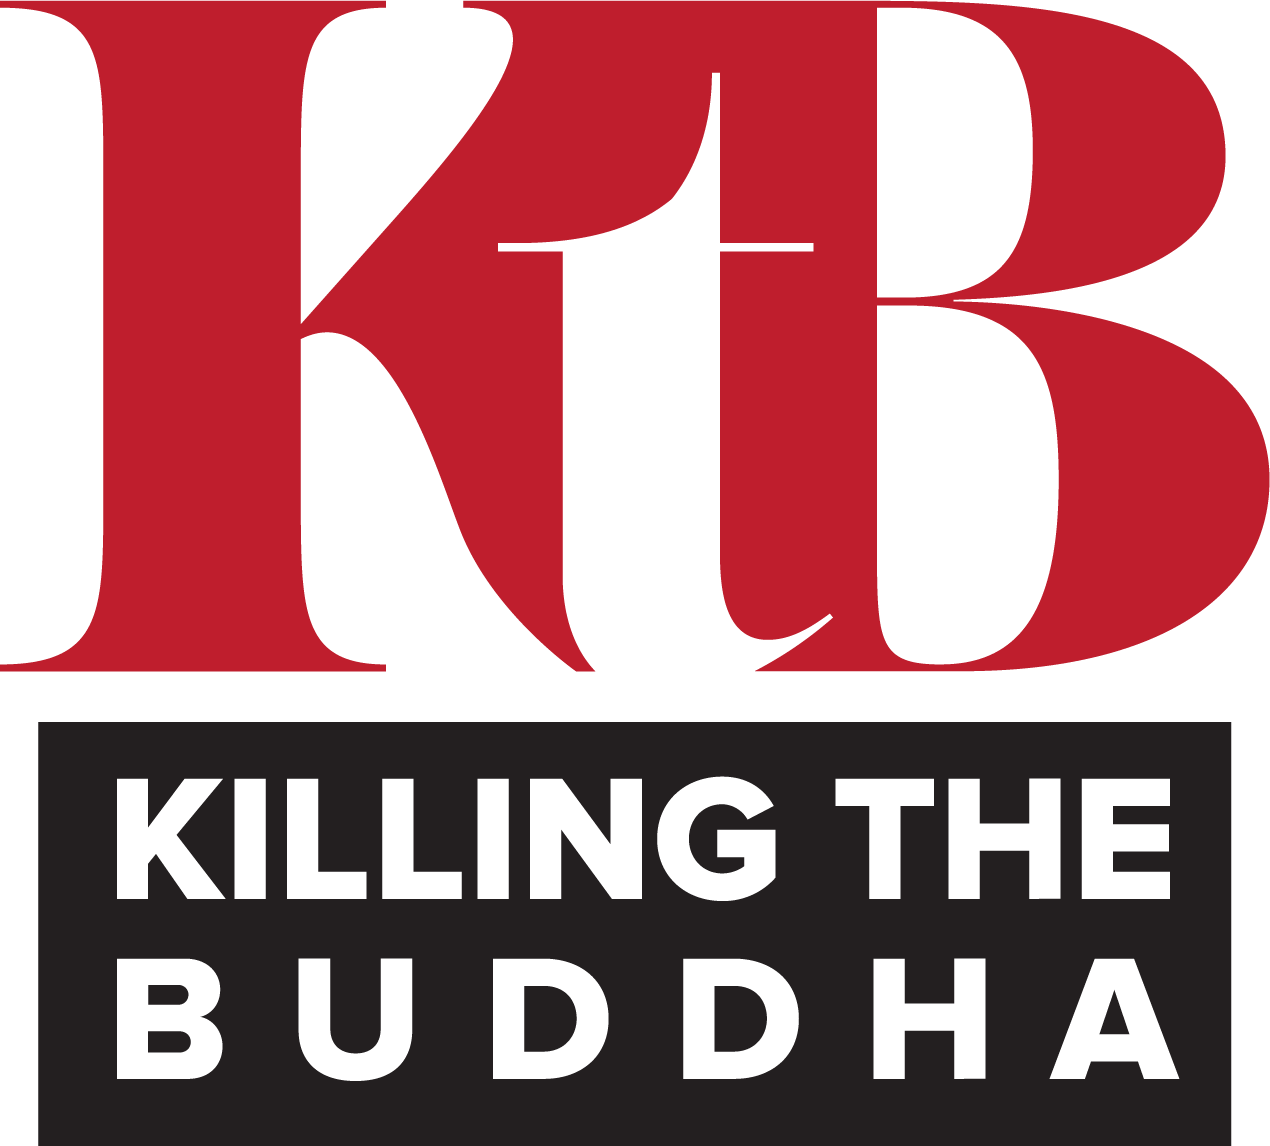 https://www.sumydesigns.com/wp-content/uploads/2020/11/Killing-the-Buddha@3x-8.png